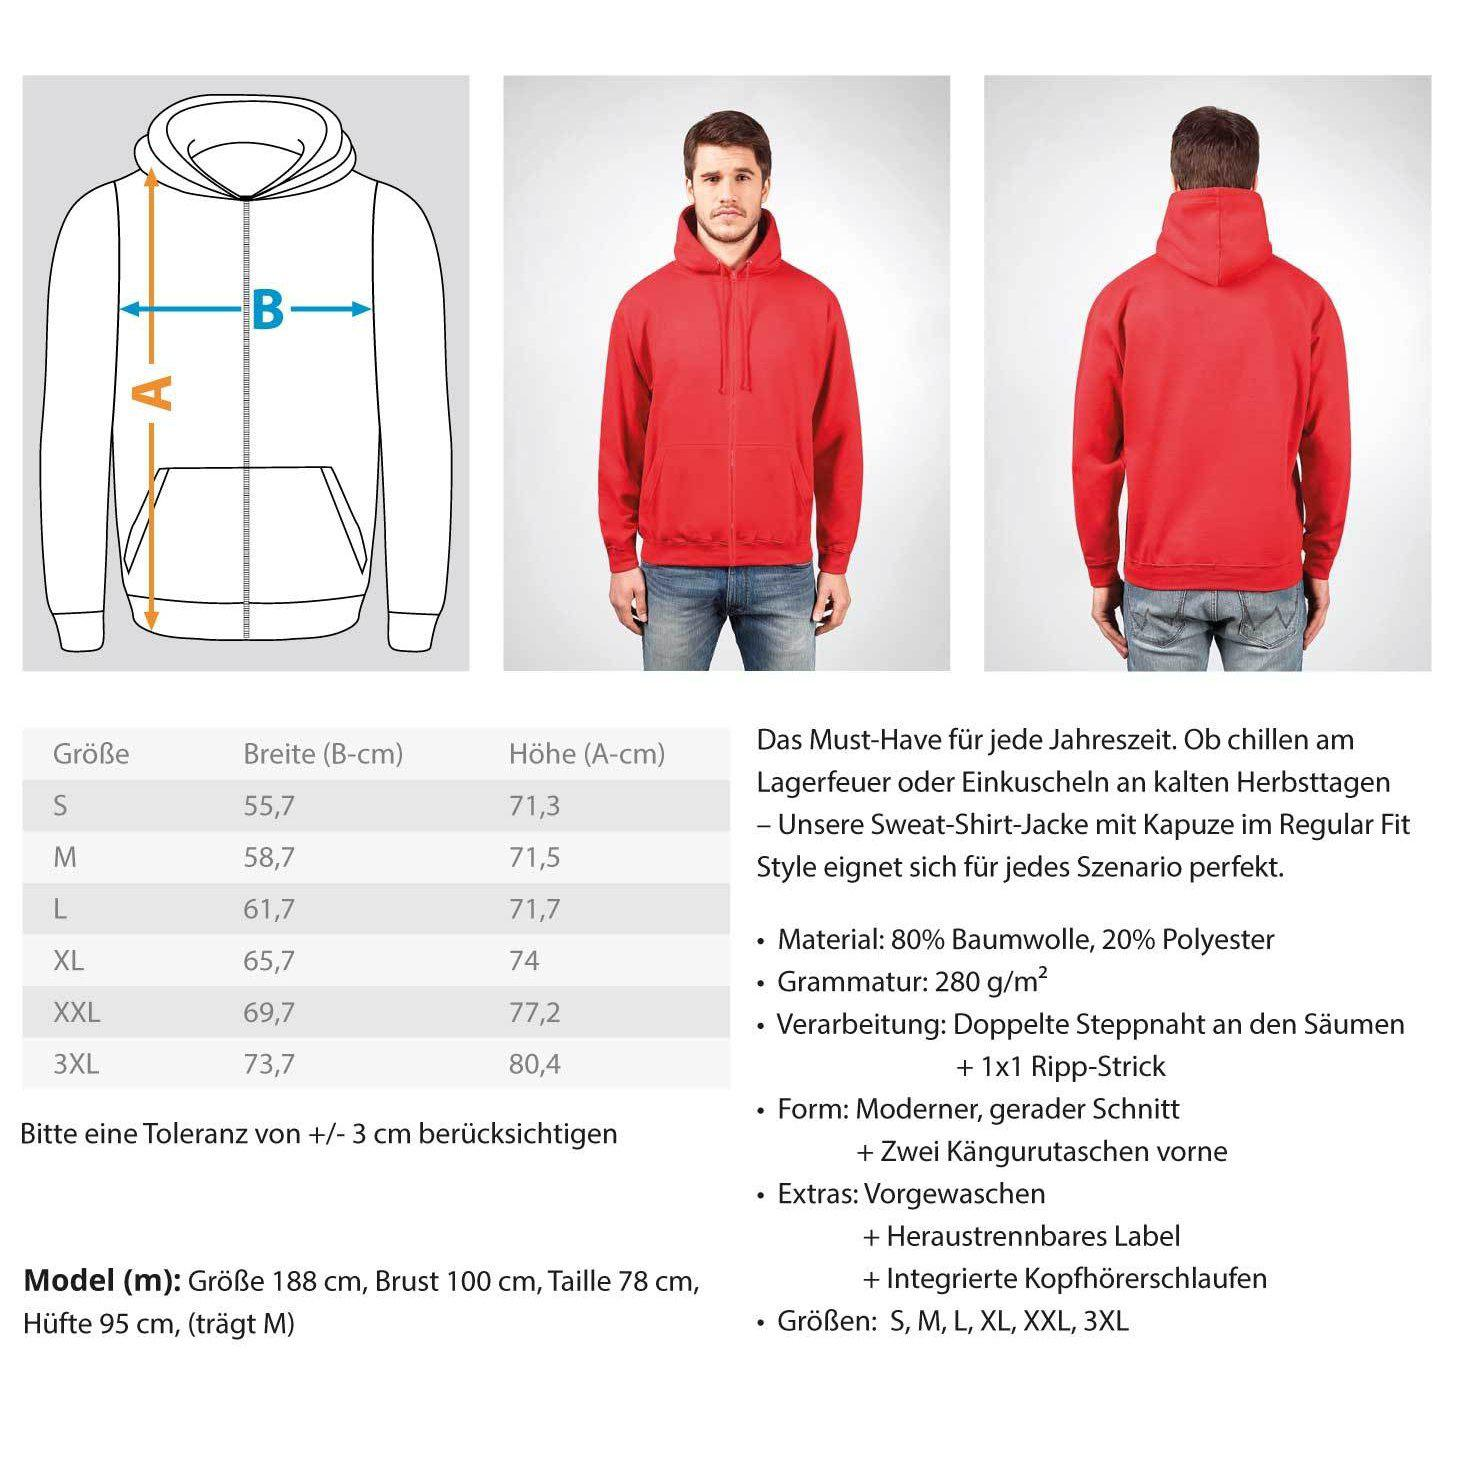 Rave On!® - Made On Planet Earth B2k20 - Zip-Hoodie ZipperB - Rave On!® der Club & Techno Szene Shop für Coole Junge Mode Streetwear Style & Fashion Outfits + Sexy Festival 420 Stuff